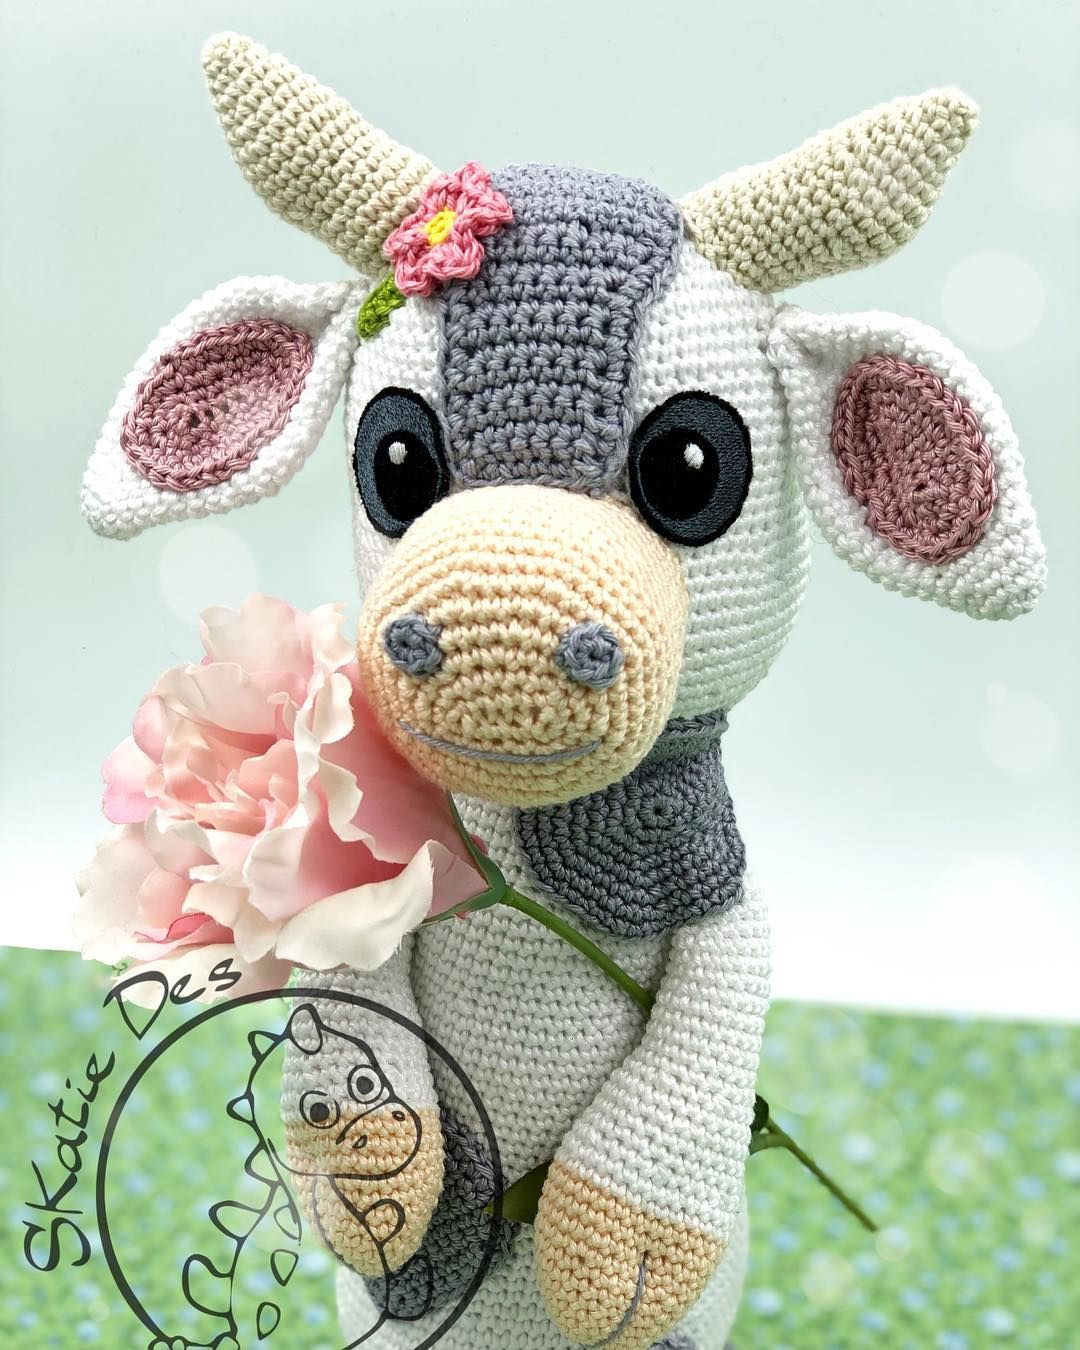 Cuddle Me Cow Amigurumi Free Pattern Crochet – DIY | Amigurumi cow ... | 1350x1080